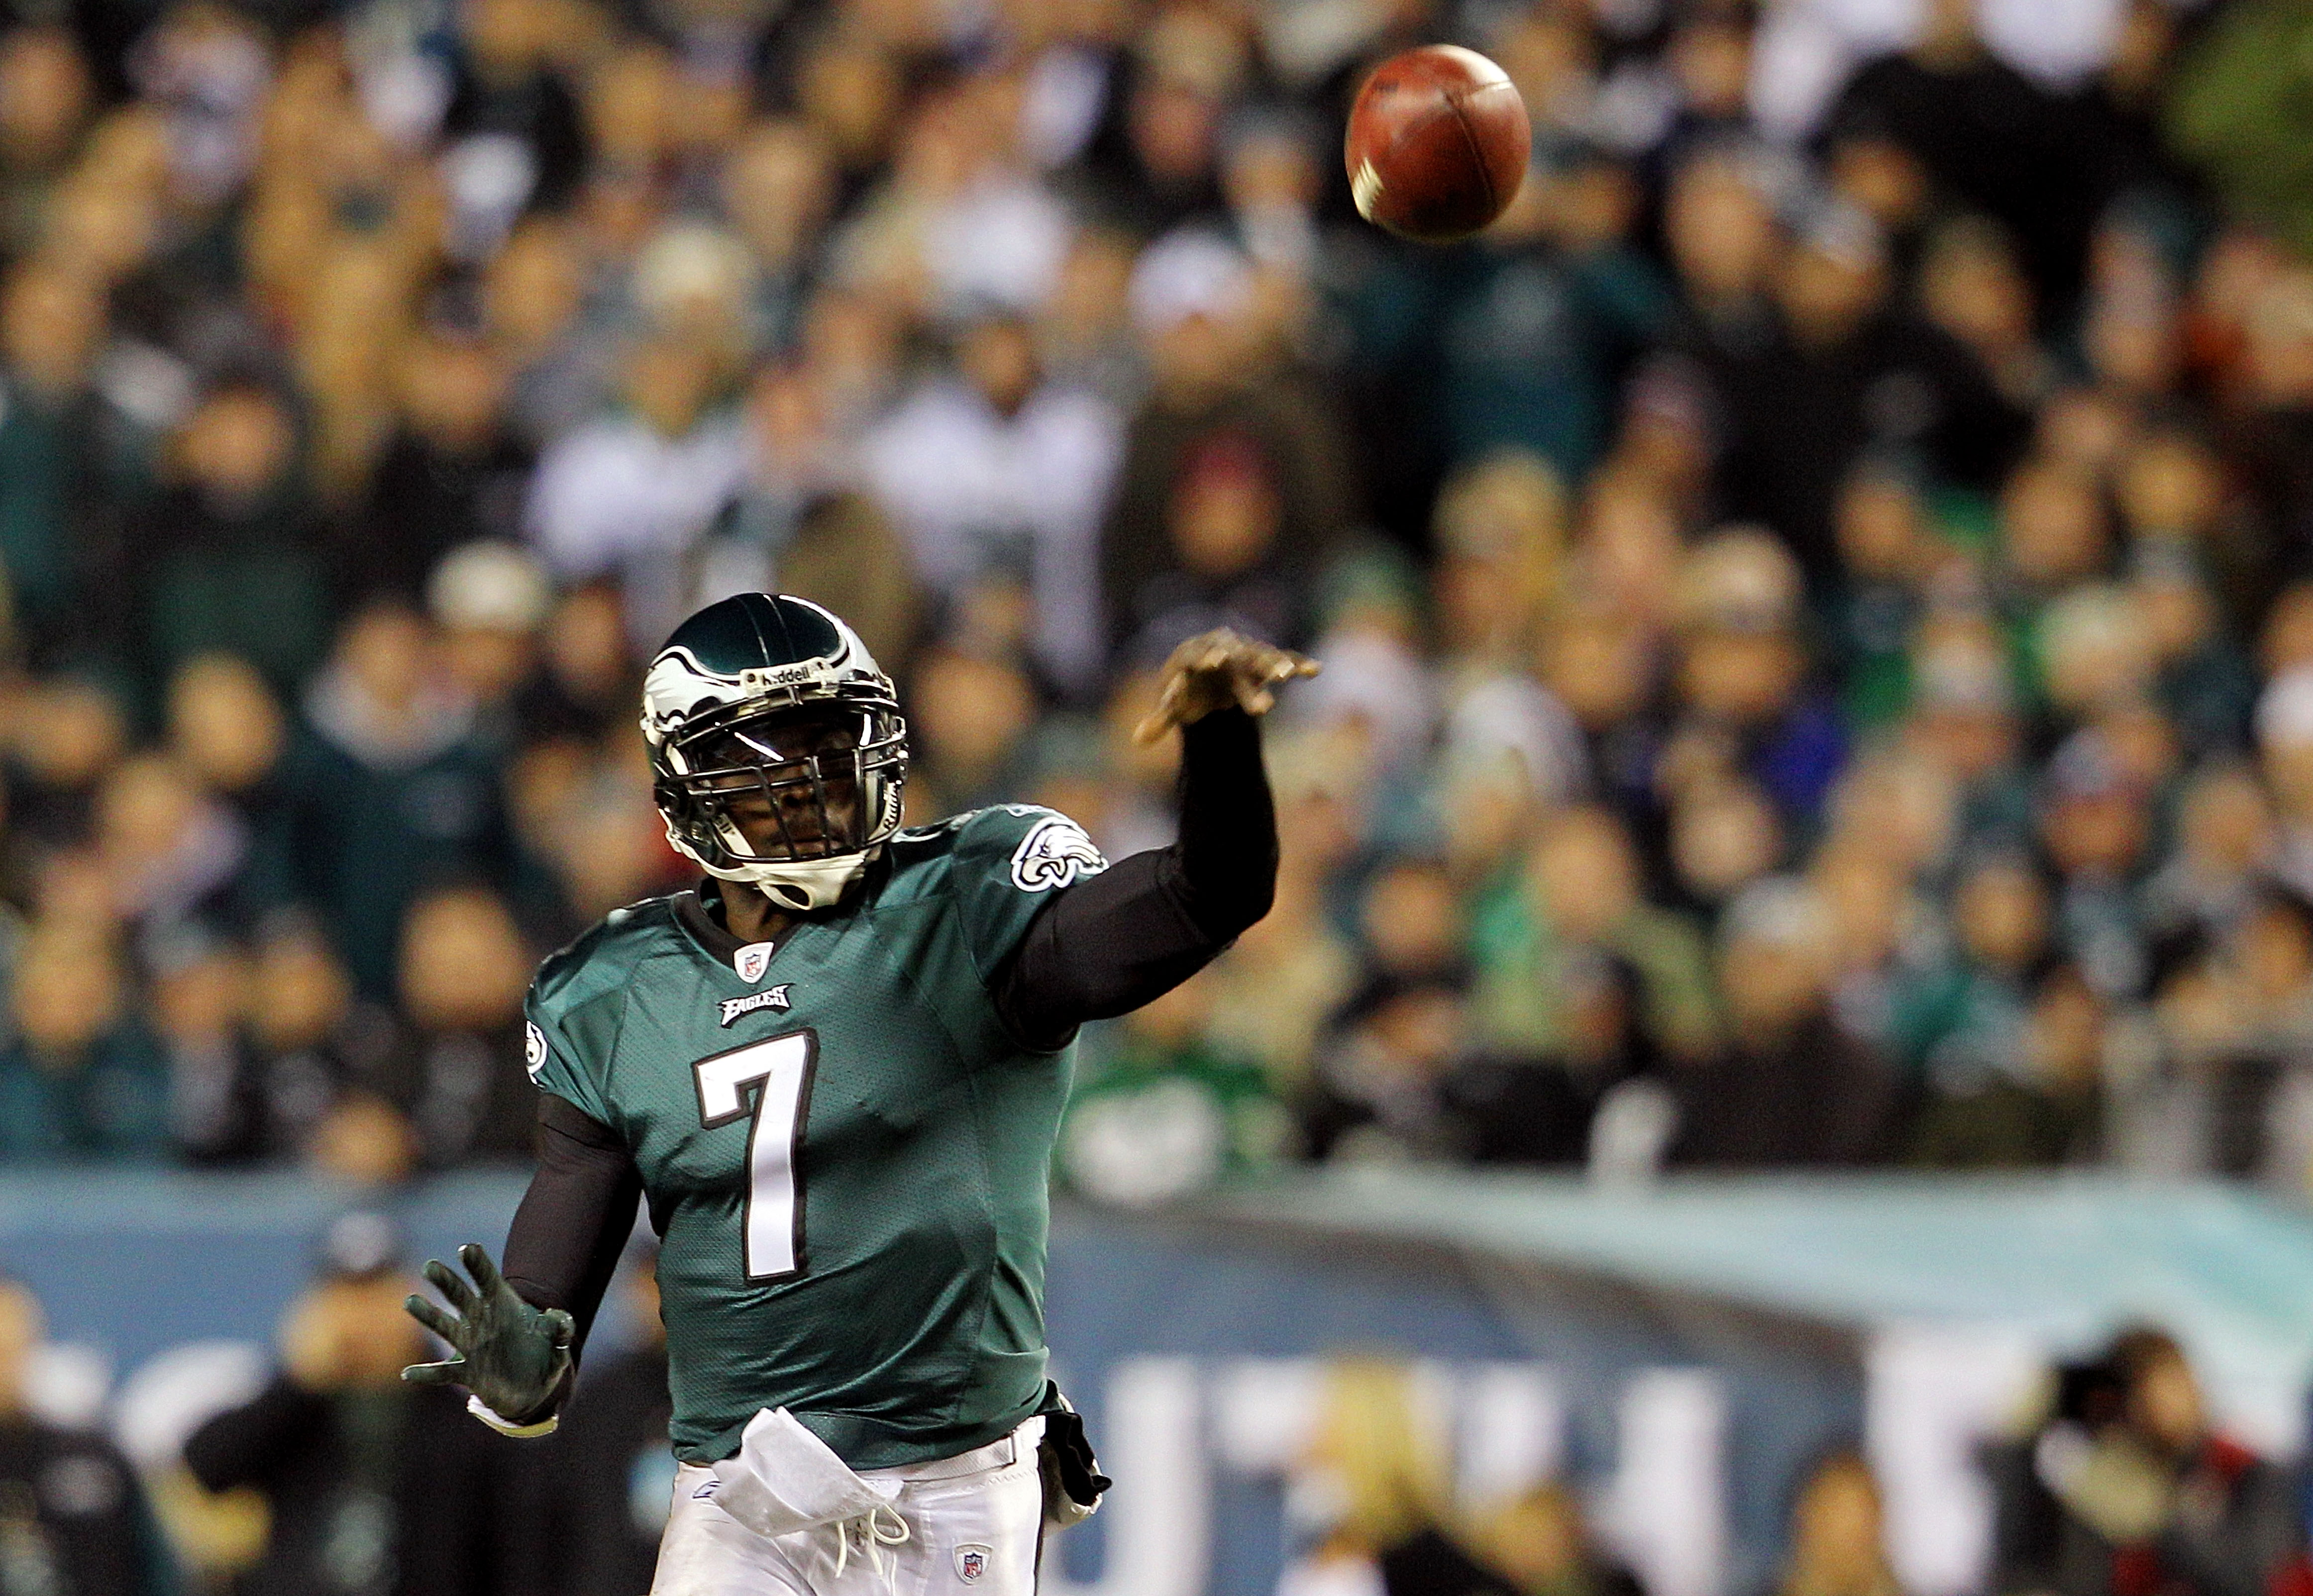 PHILADELPHIA - NOVEMBER 21:  Michael Vick #7 of the Philadelphia Eagles passes against the New York Giants at Lincoln Financial Field on November 21, 2010 in Philadelphia, Pennsylvania.  (Photo by Michael Heiman/Getty Images)